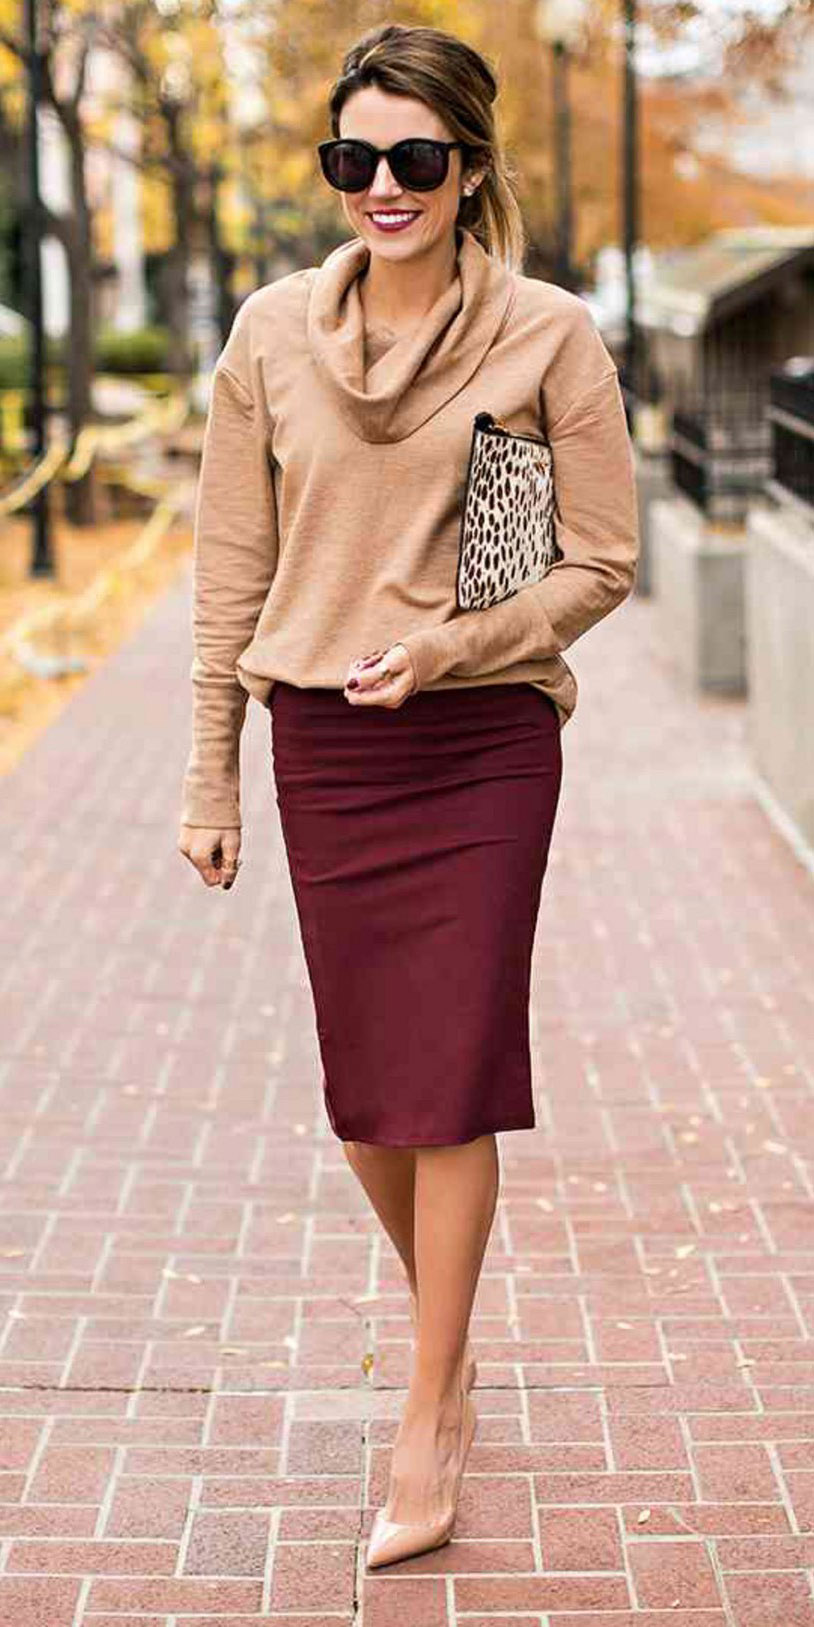 burgundy-pencil-skirt-tan-sweater-tan-shoe-pumps-sun-fall-winter-hairr-work.jpg